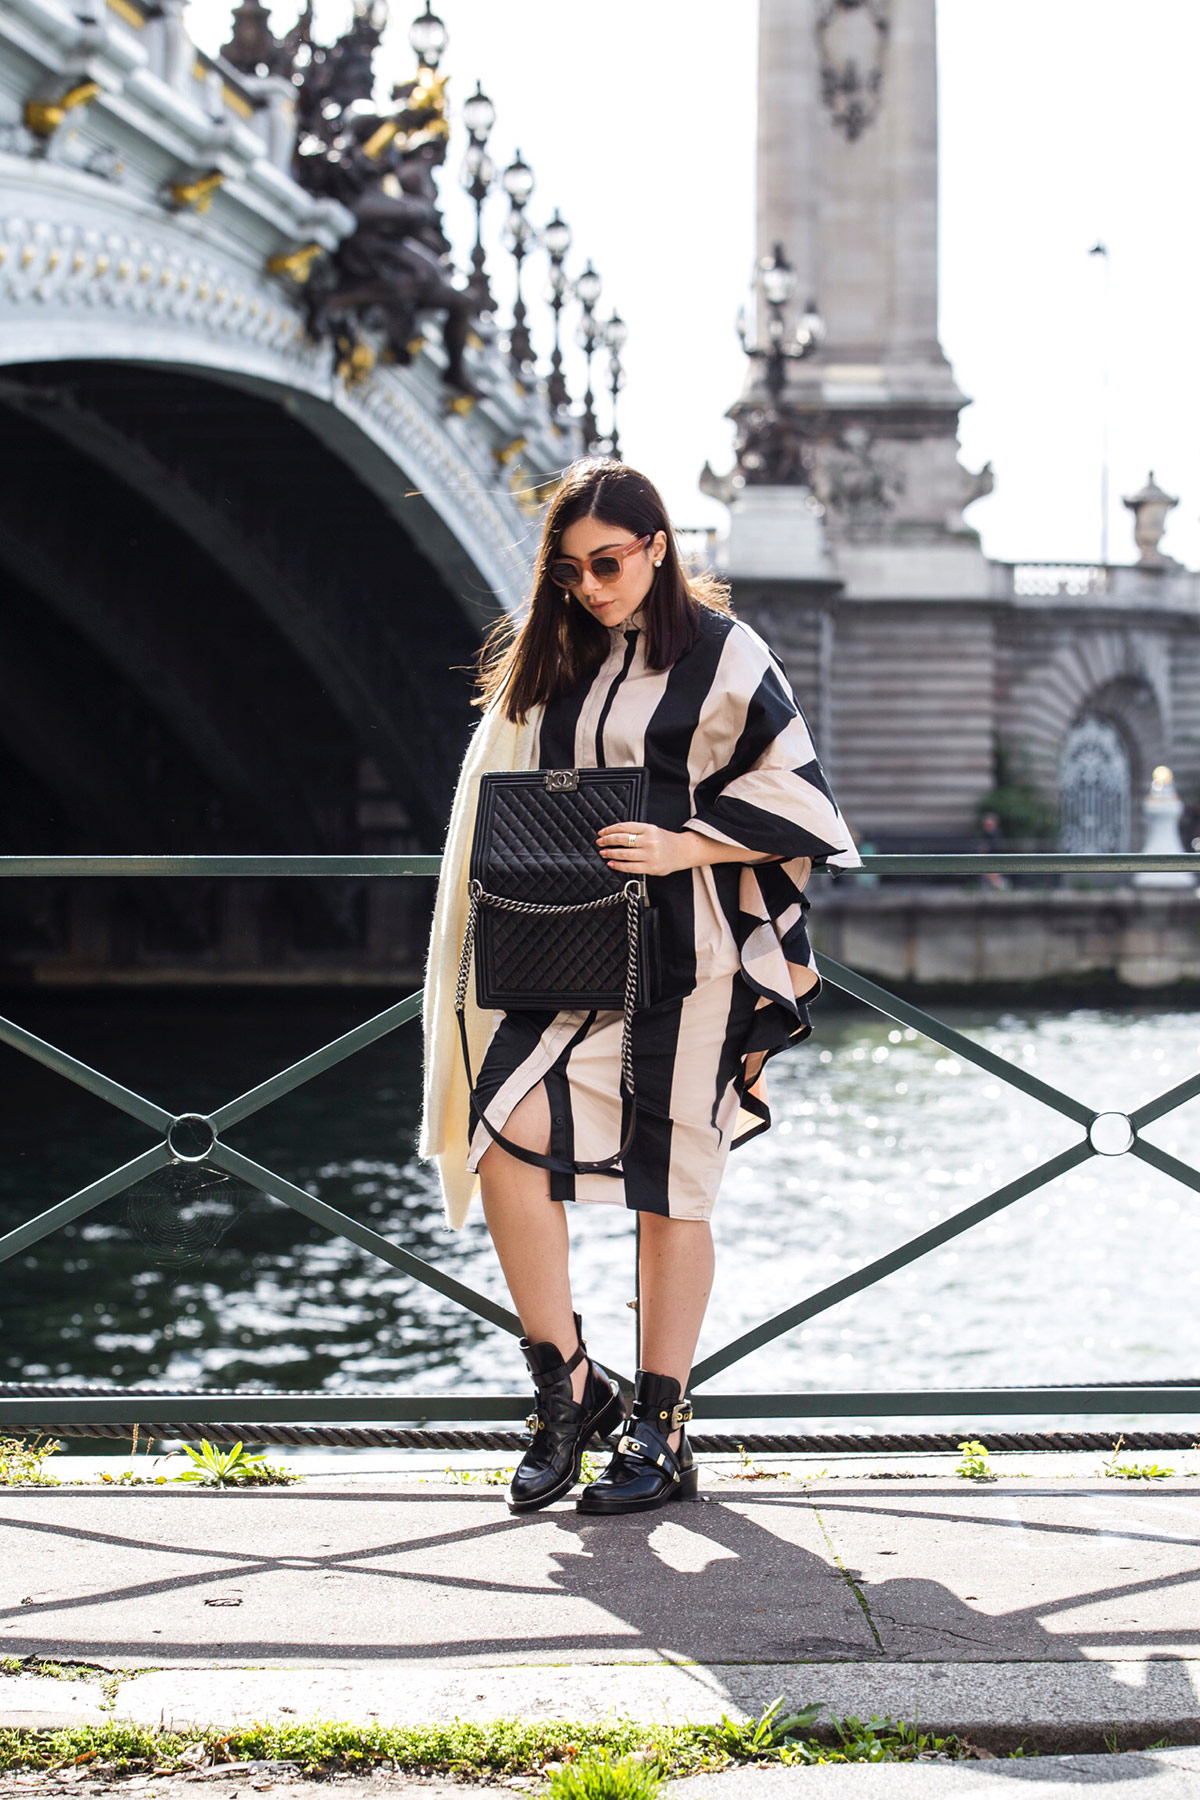 Stella Asteria wearing stripes and ruffles during Paris Fashion Week, with Chanel boy bag and Balenciaga combat boots - Paris Street Style Inspiration